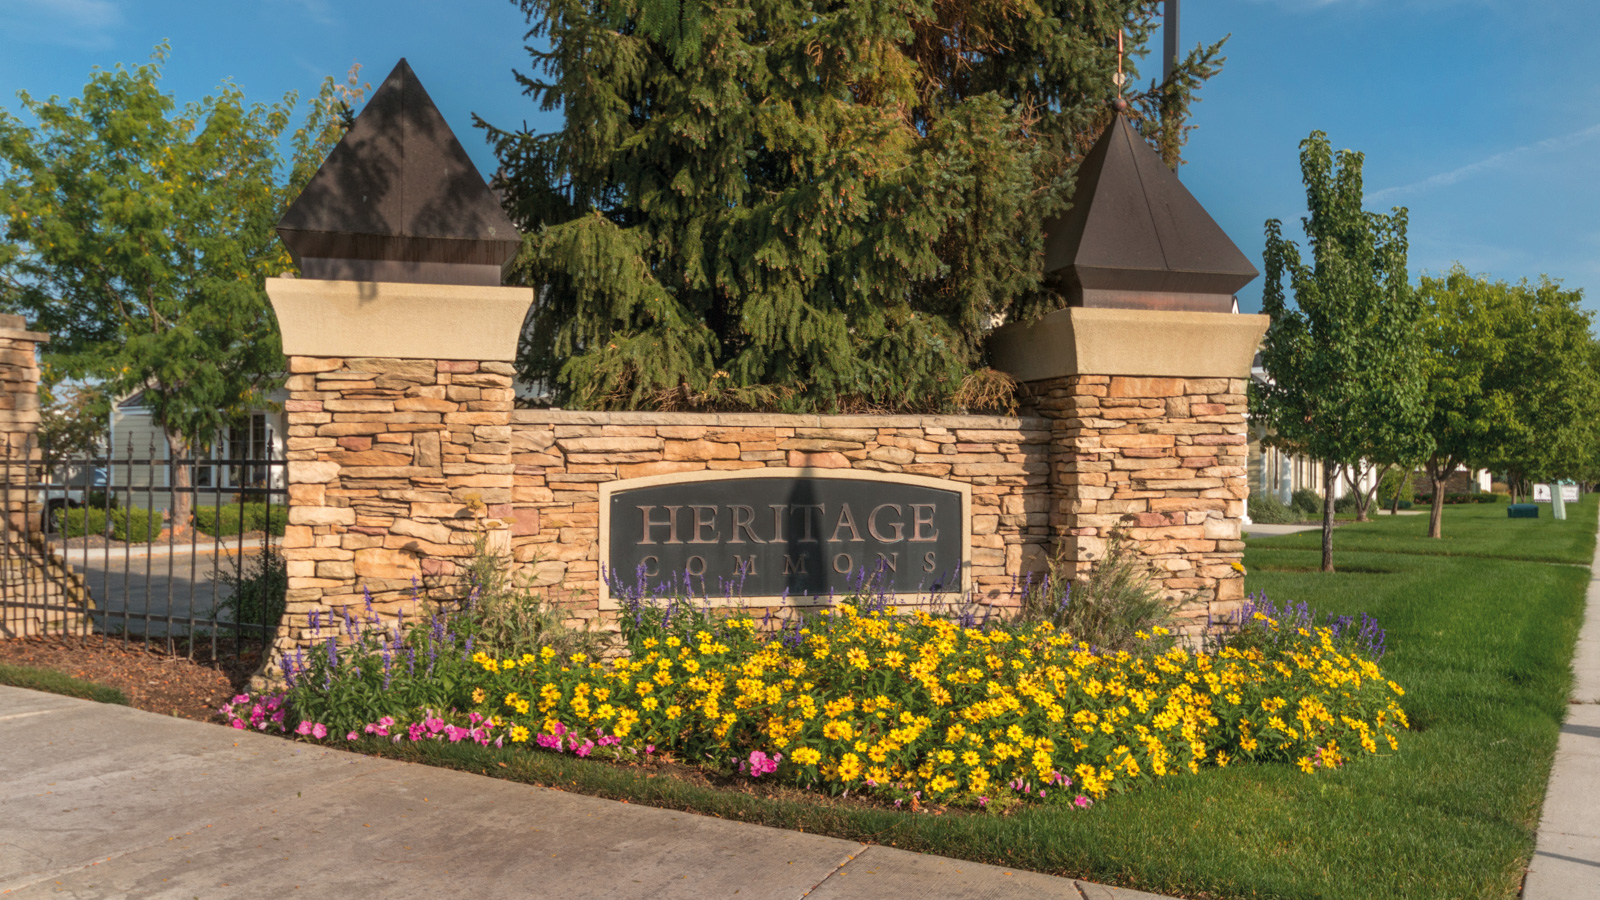 Heritage Commons Meridian Idaho Homes for Sale and ID Real Estate